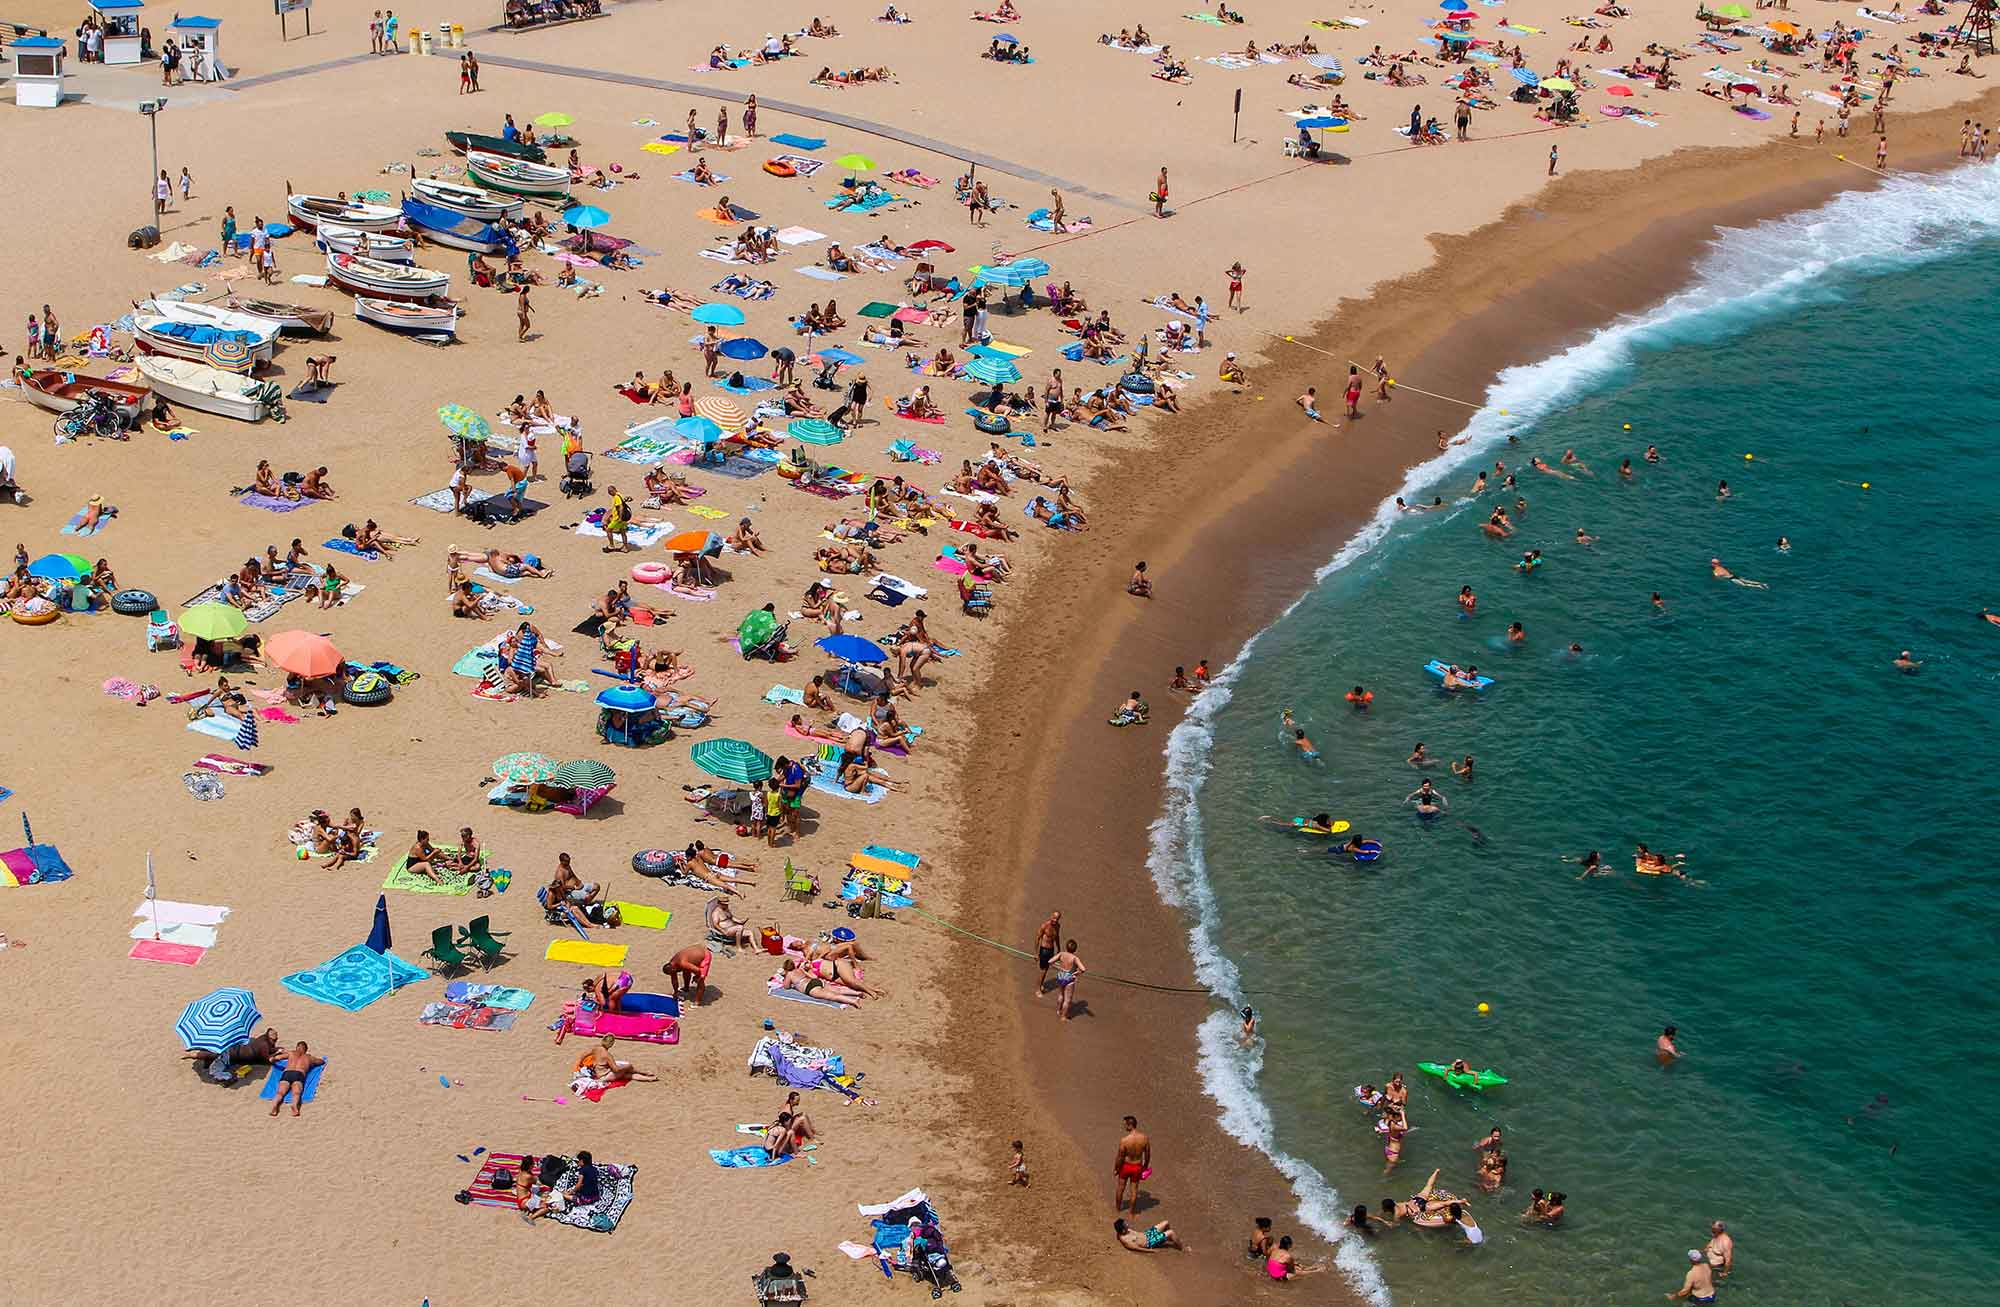 Overhead shot of a crowded beach